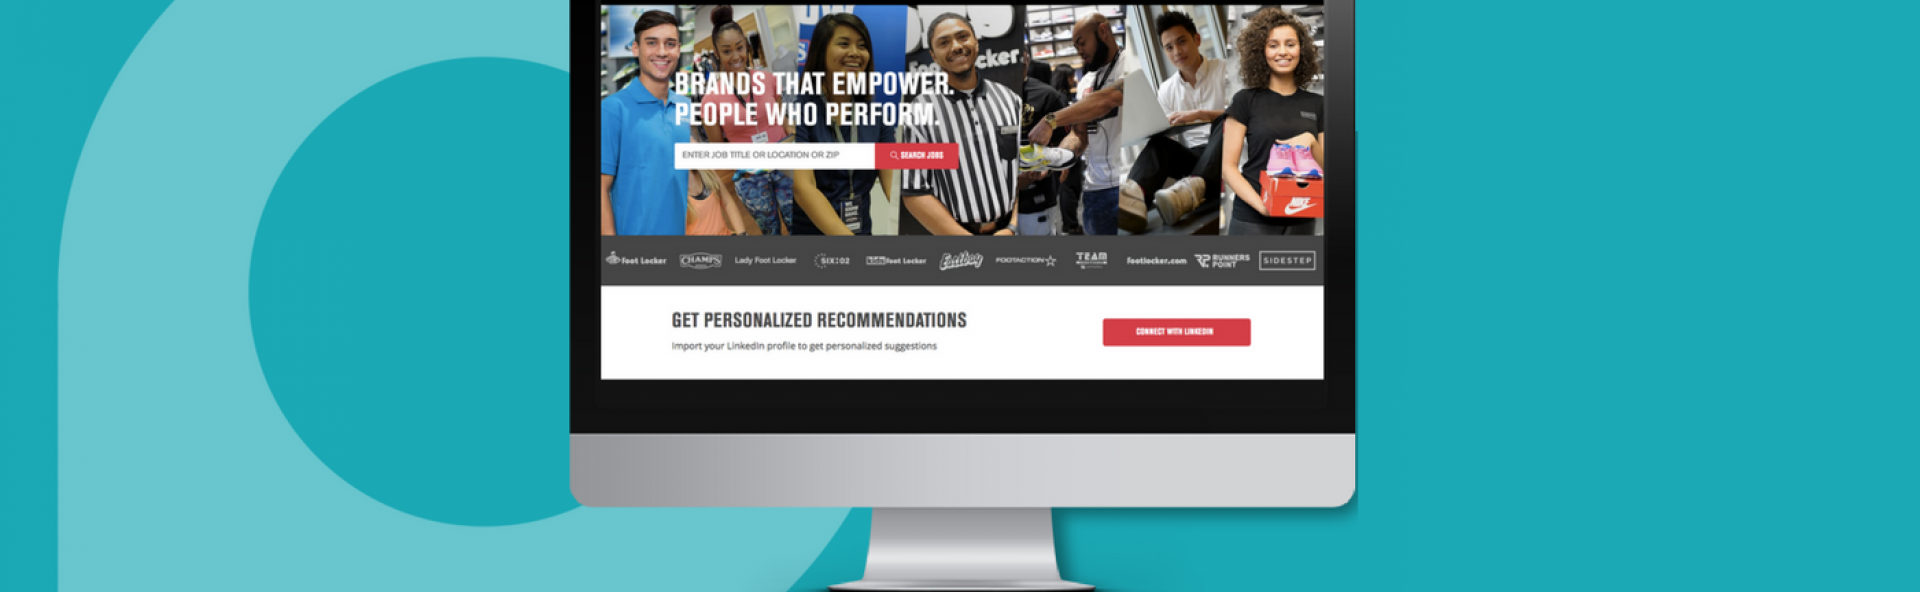 Check Out Foot Locker's Career Site, Powered by Phenom People